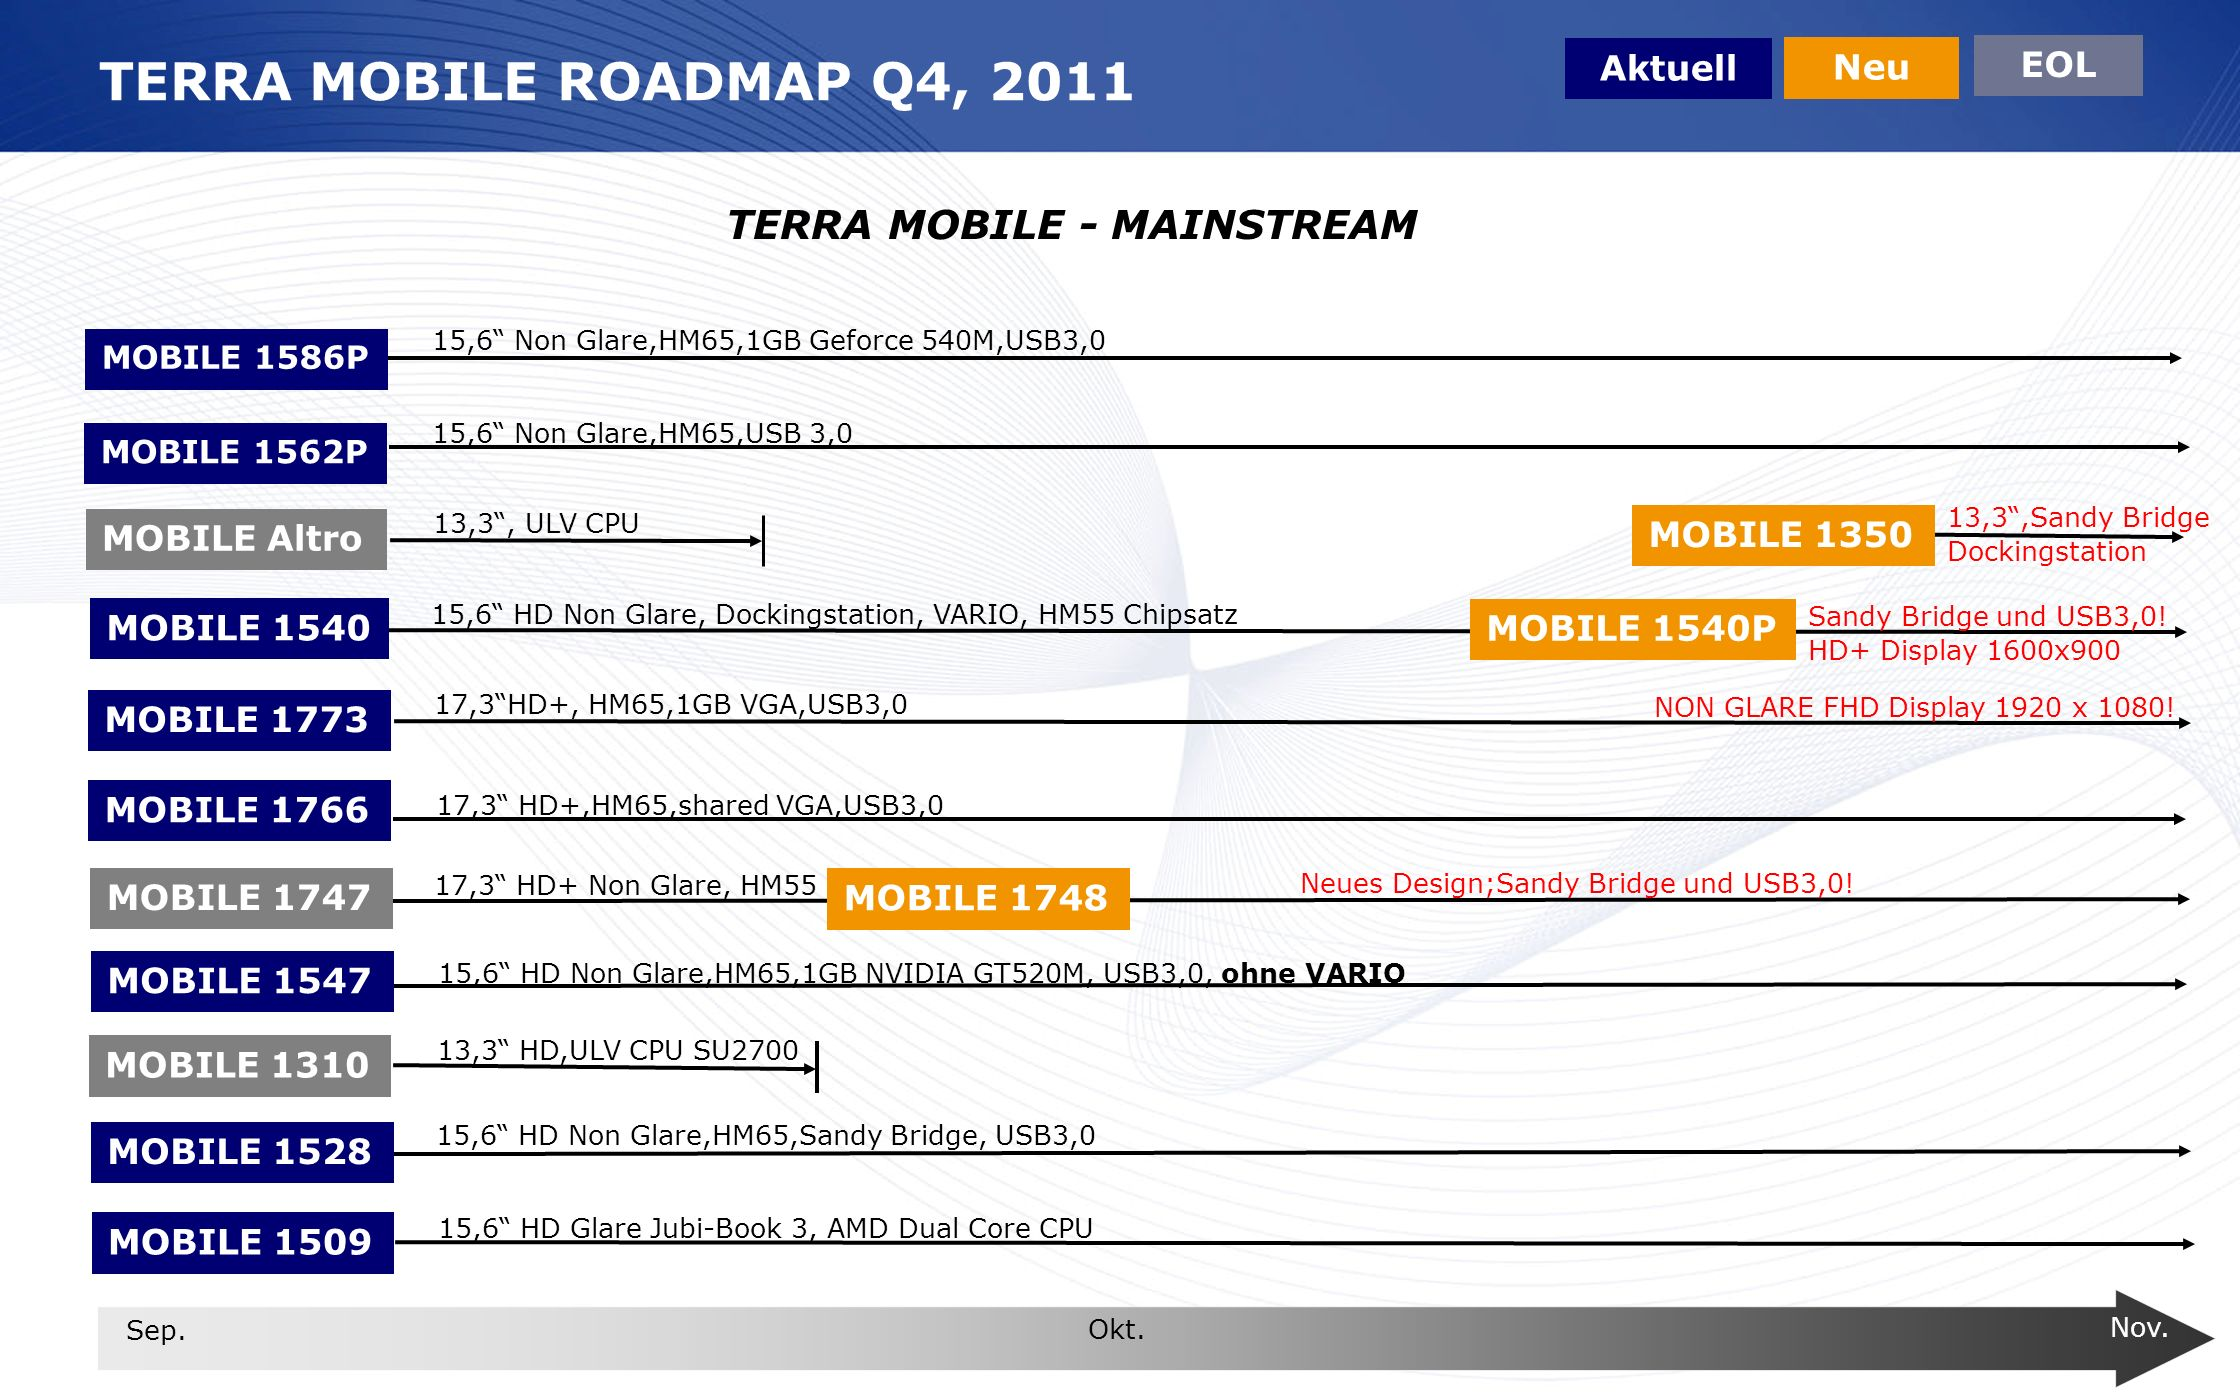 TERRA MOBILE ROADMAP Q4, 2011 TERRA MOBILE - MAINSTREAM Aktuell Neu